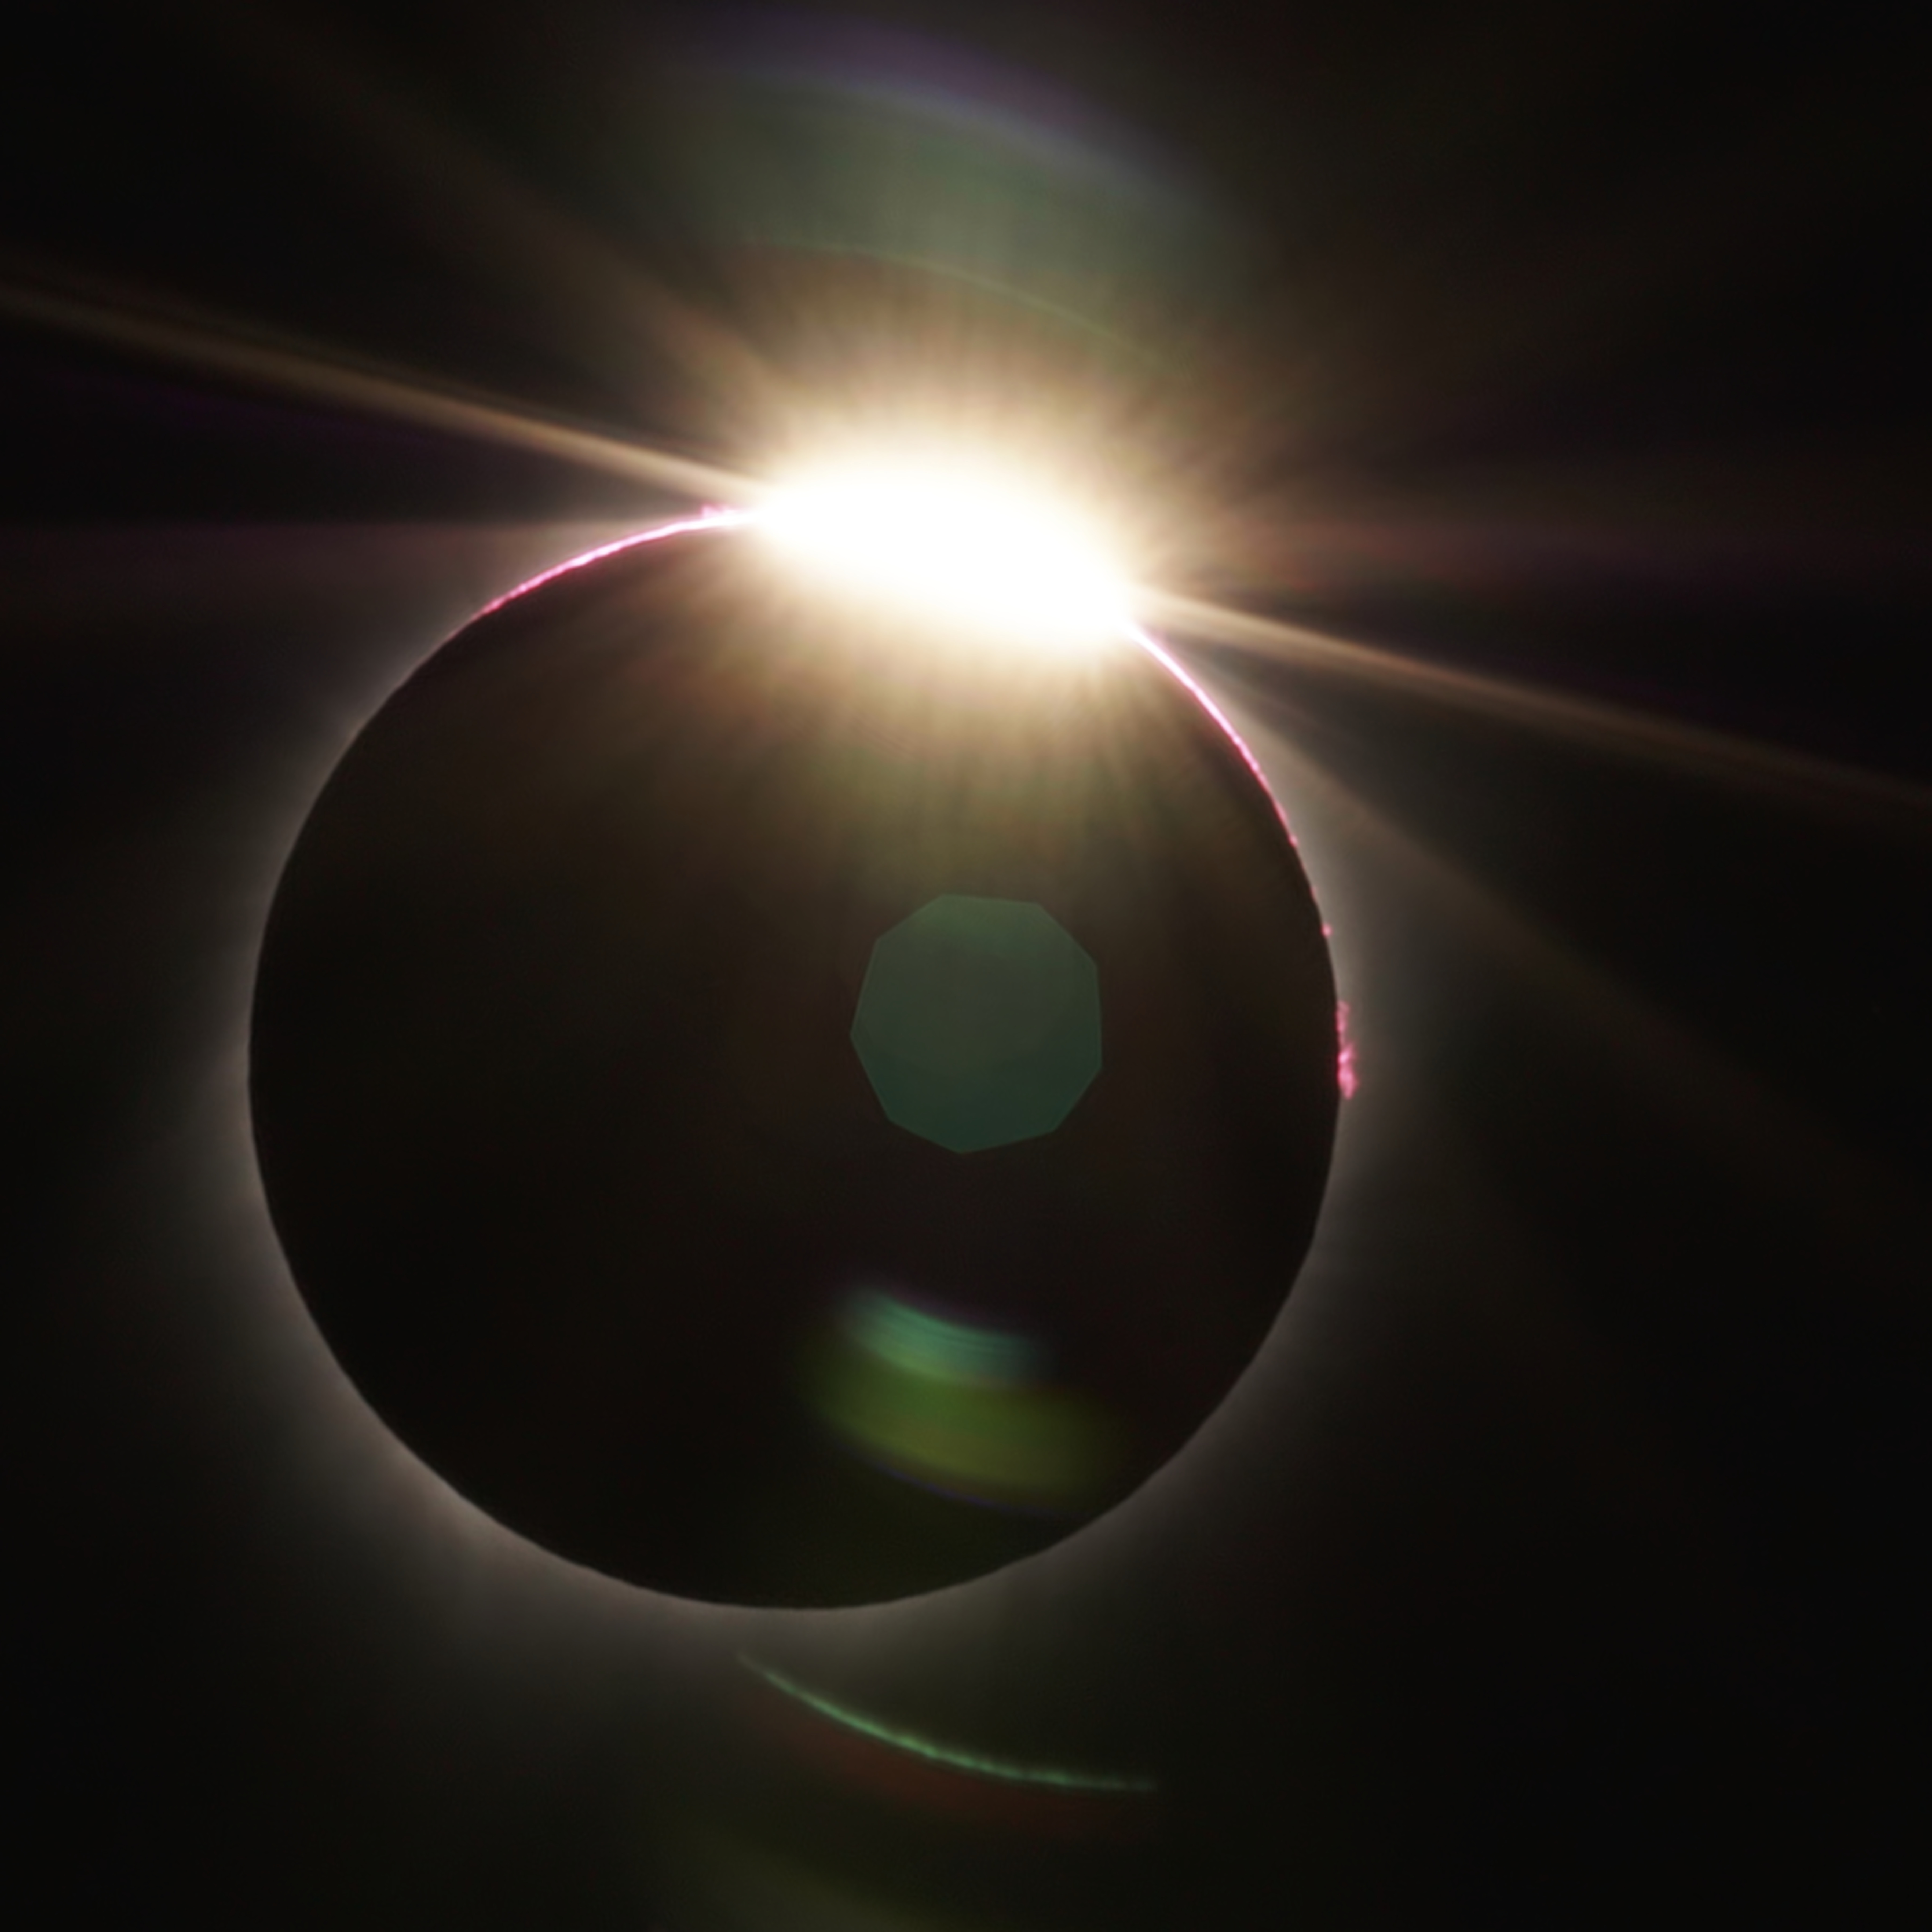 30x60 solar eclipse totality l23ow1